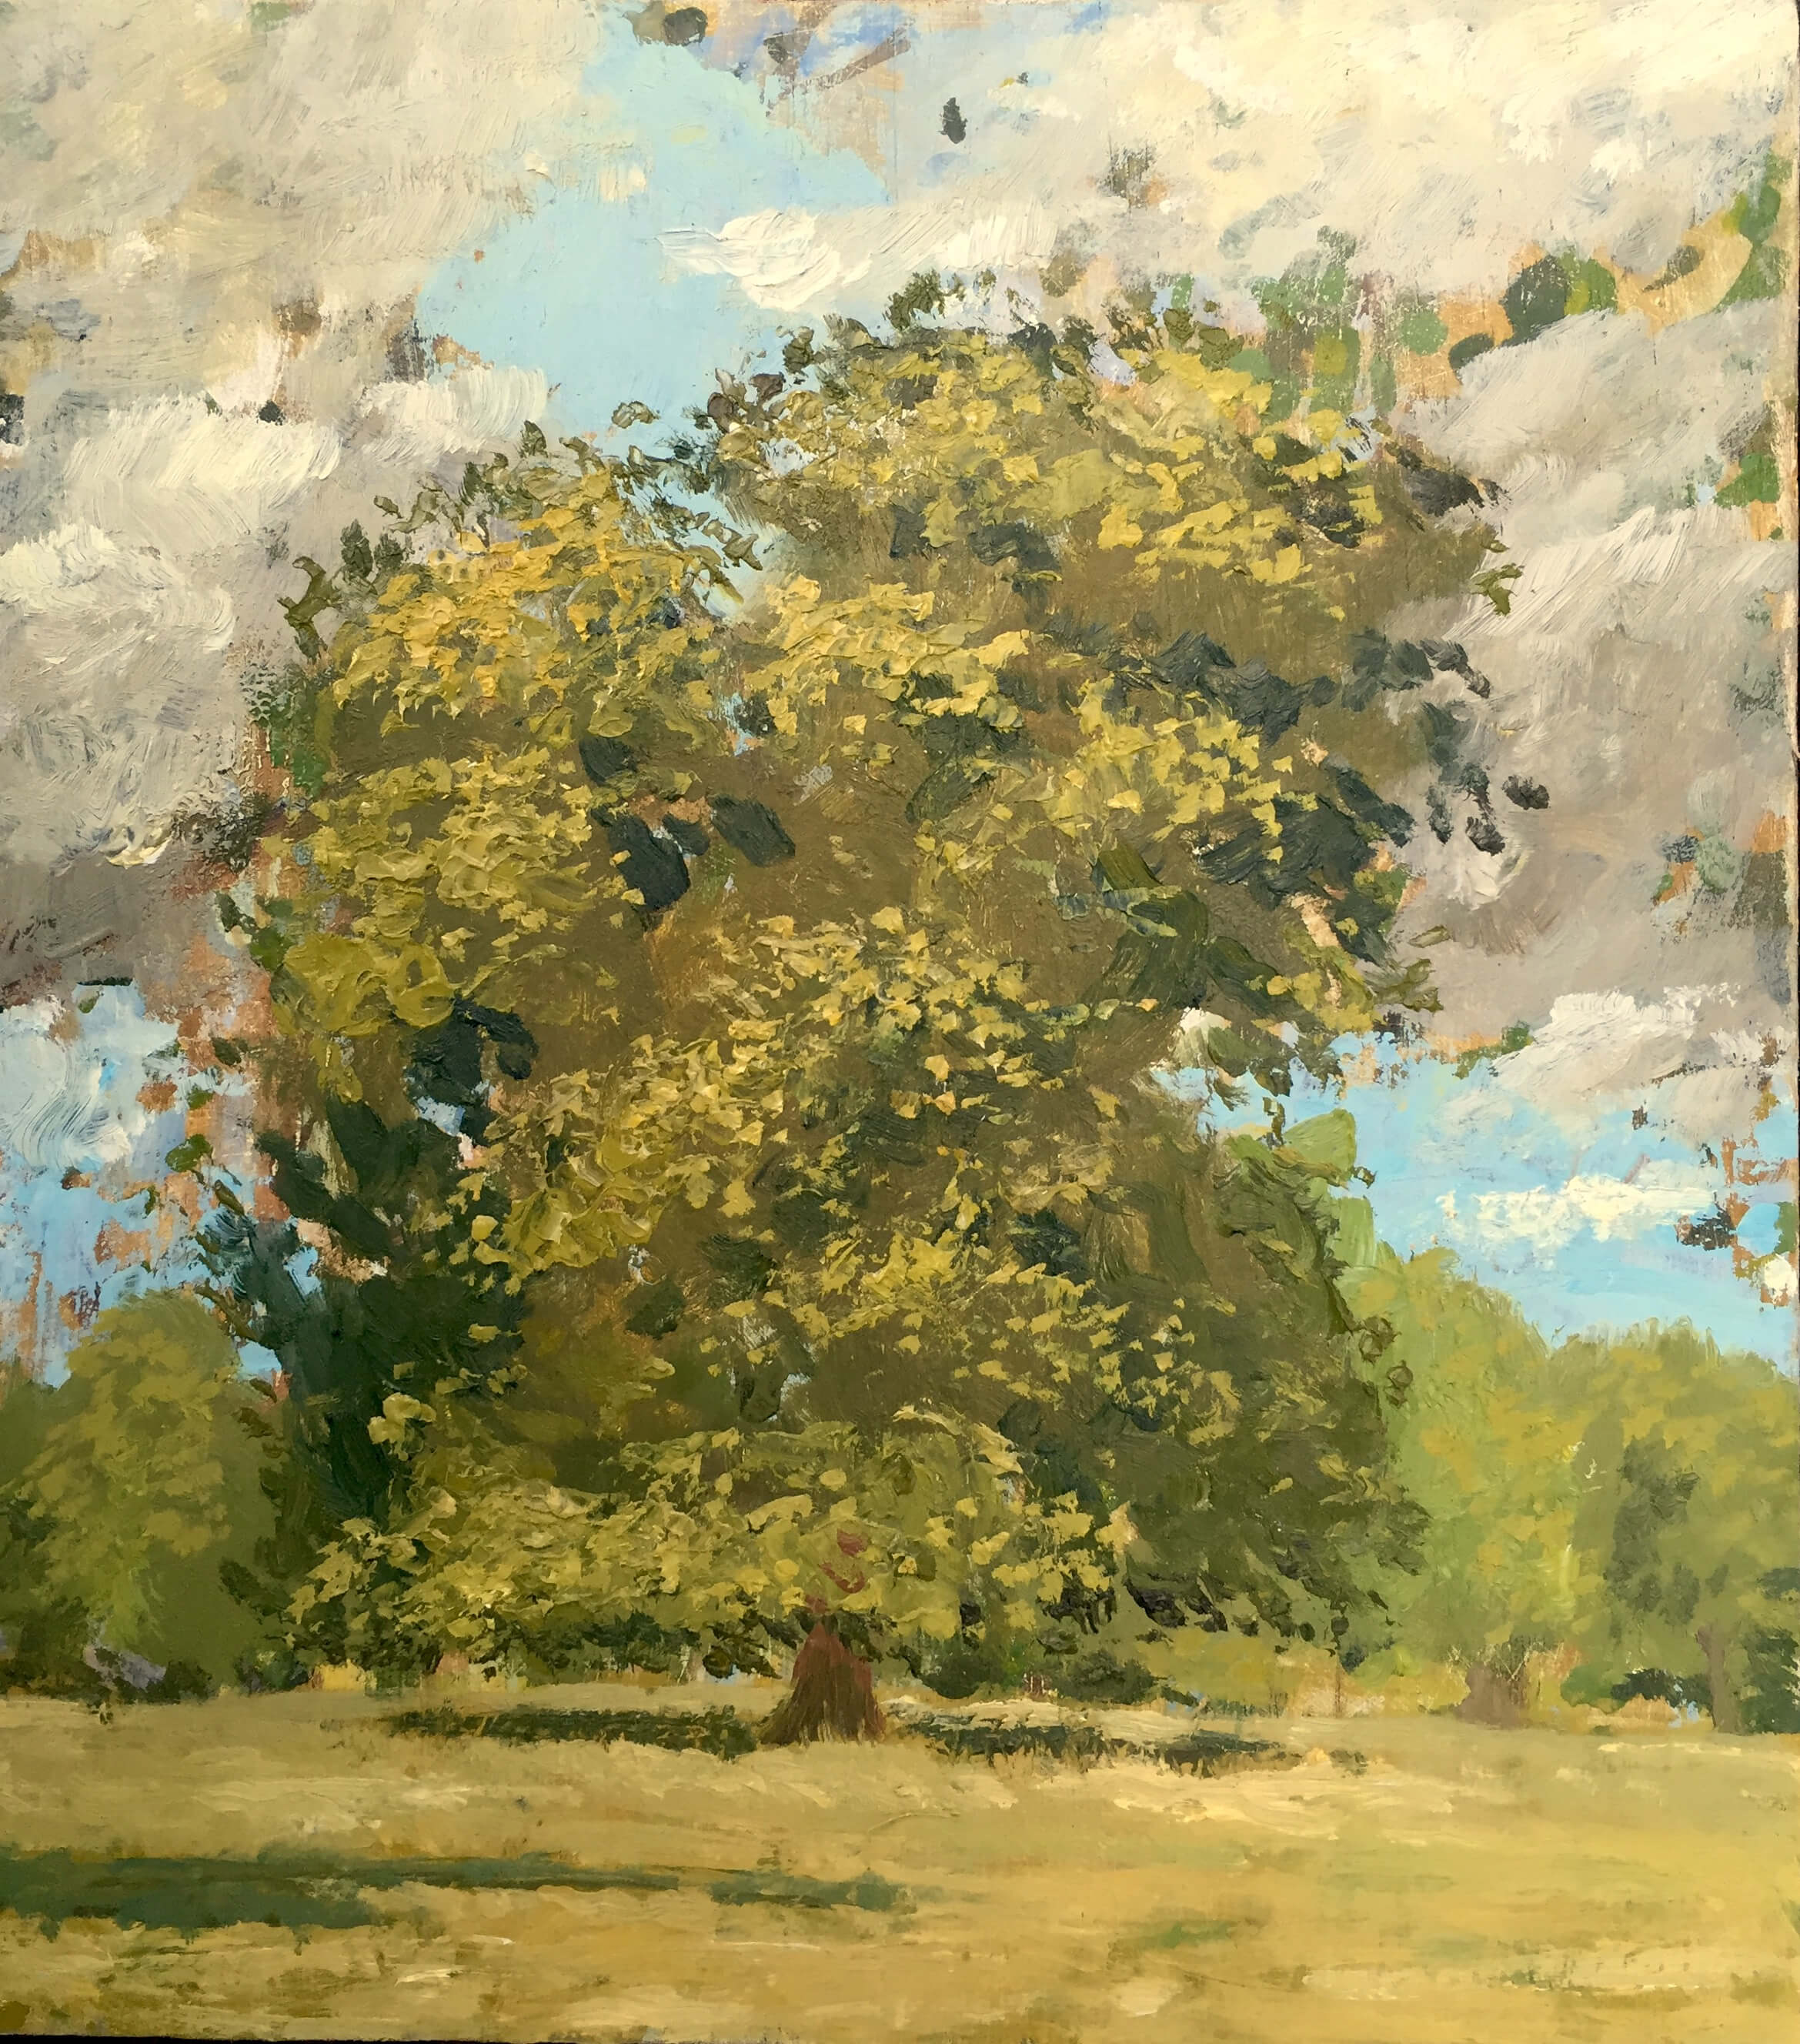 Oak Tree - Bedfordshire , High Summer ( Oil on panel ) 25.5 x 22.5 cm